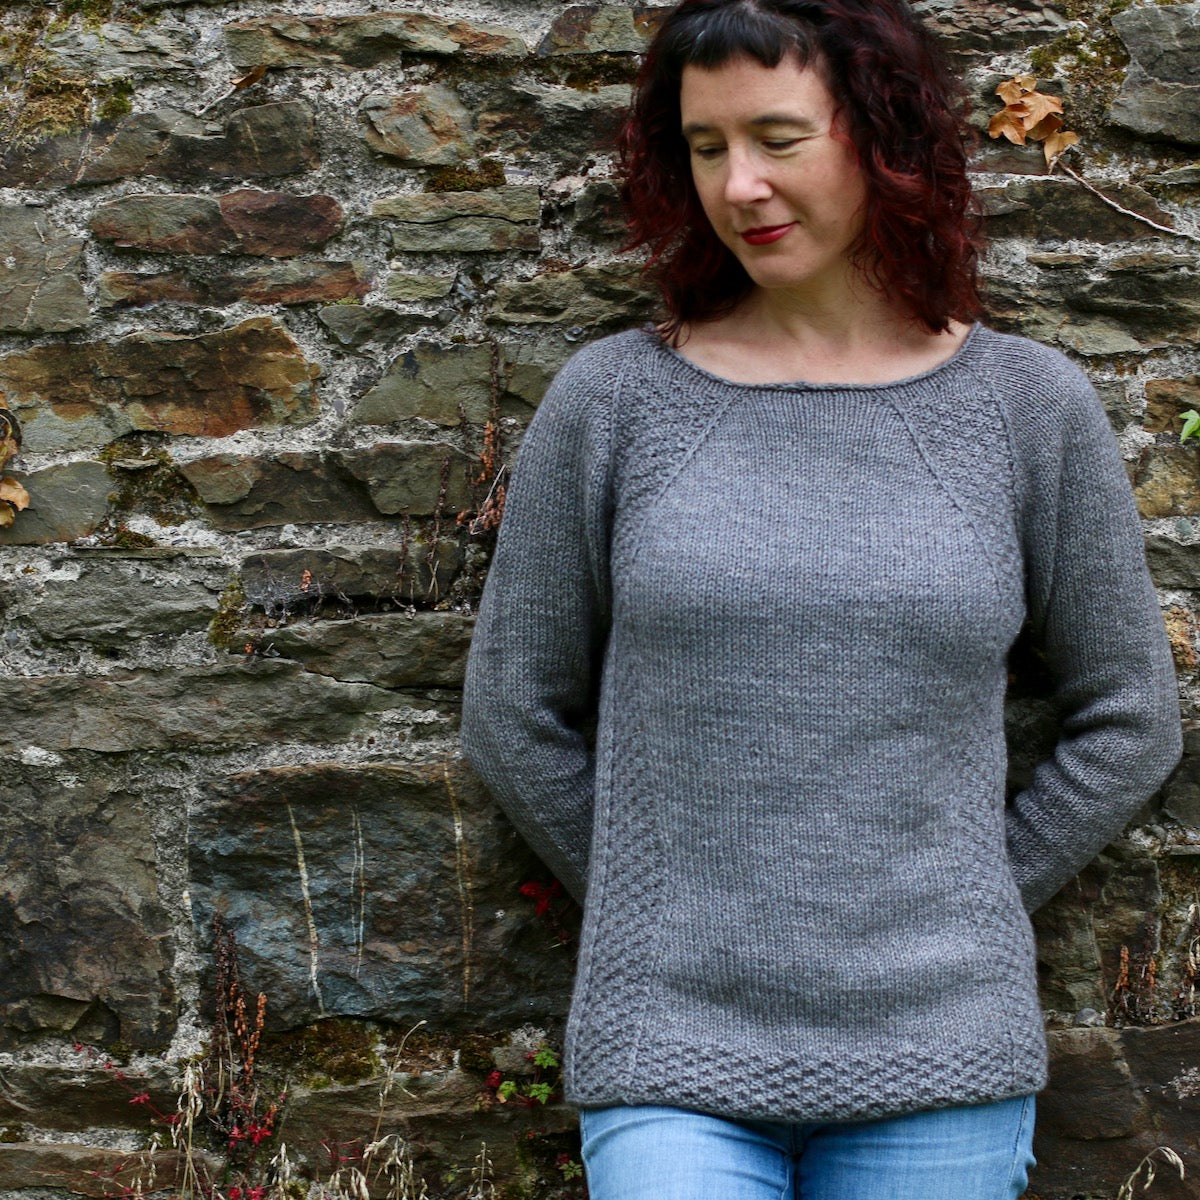 image of woman wearing a grey sweater against a stone wall looking down